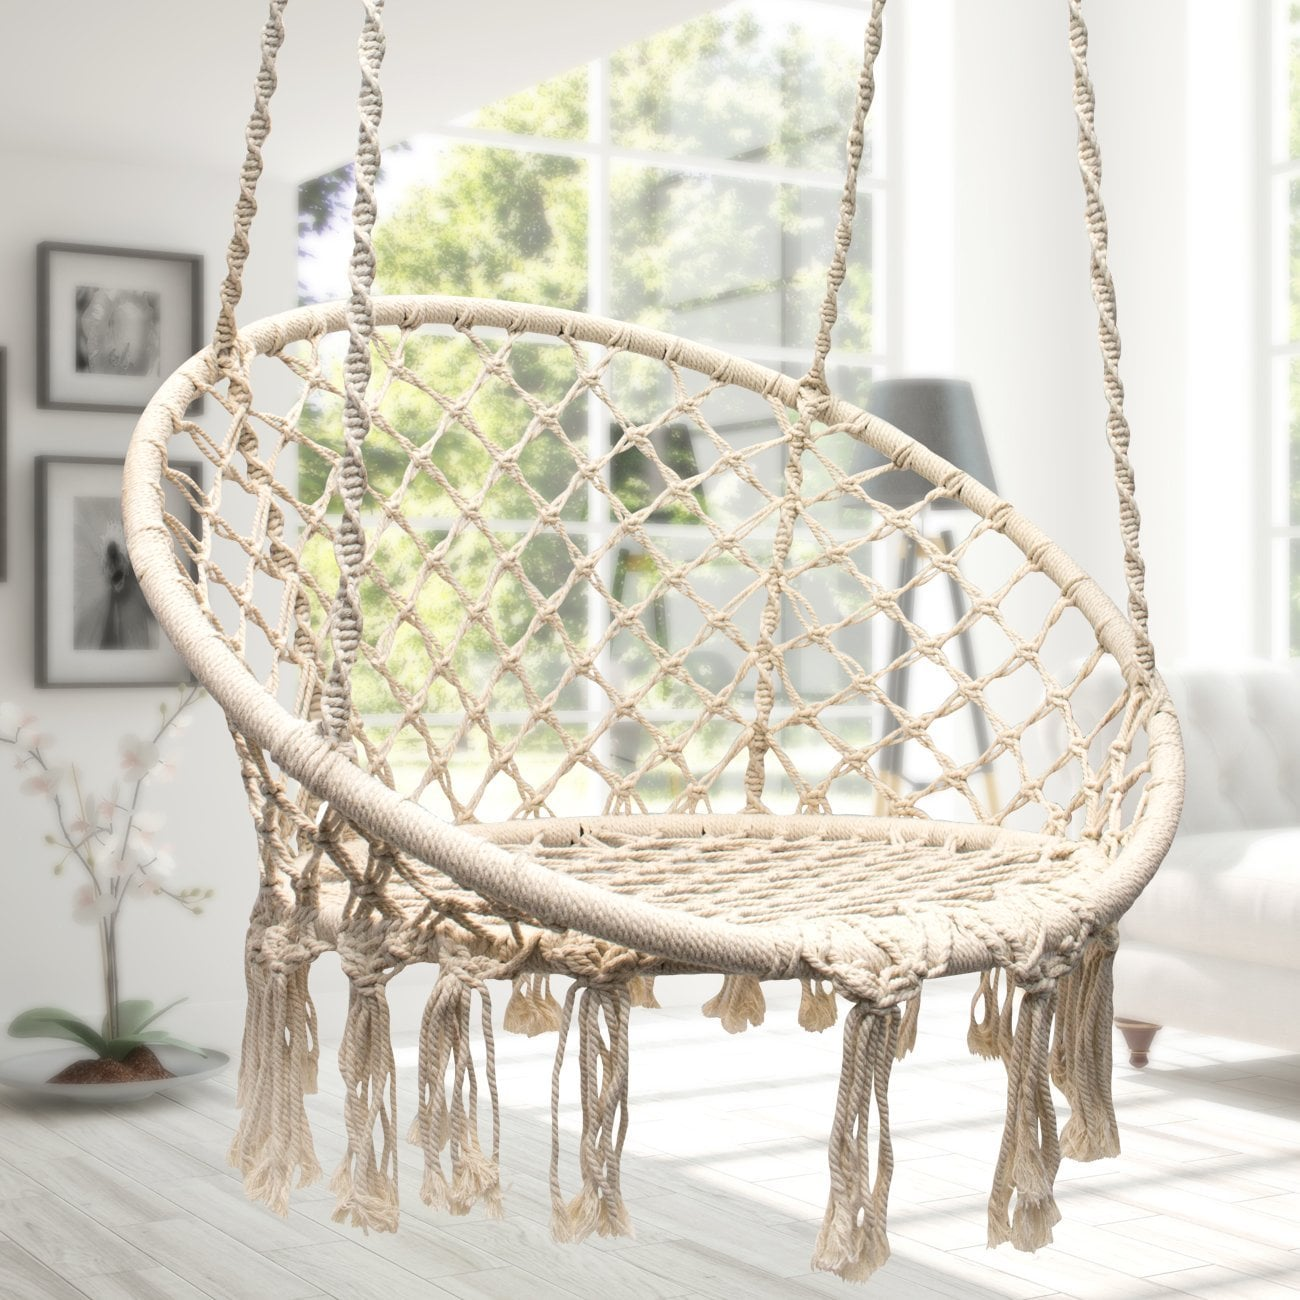 How To Hang A Hammock Chair In Your Room